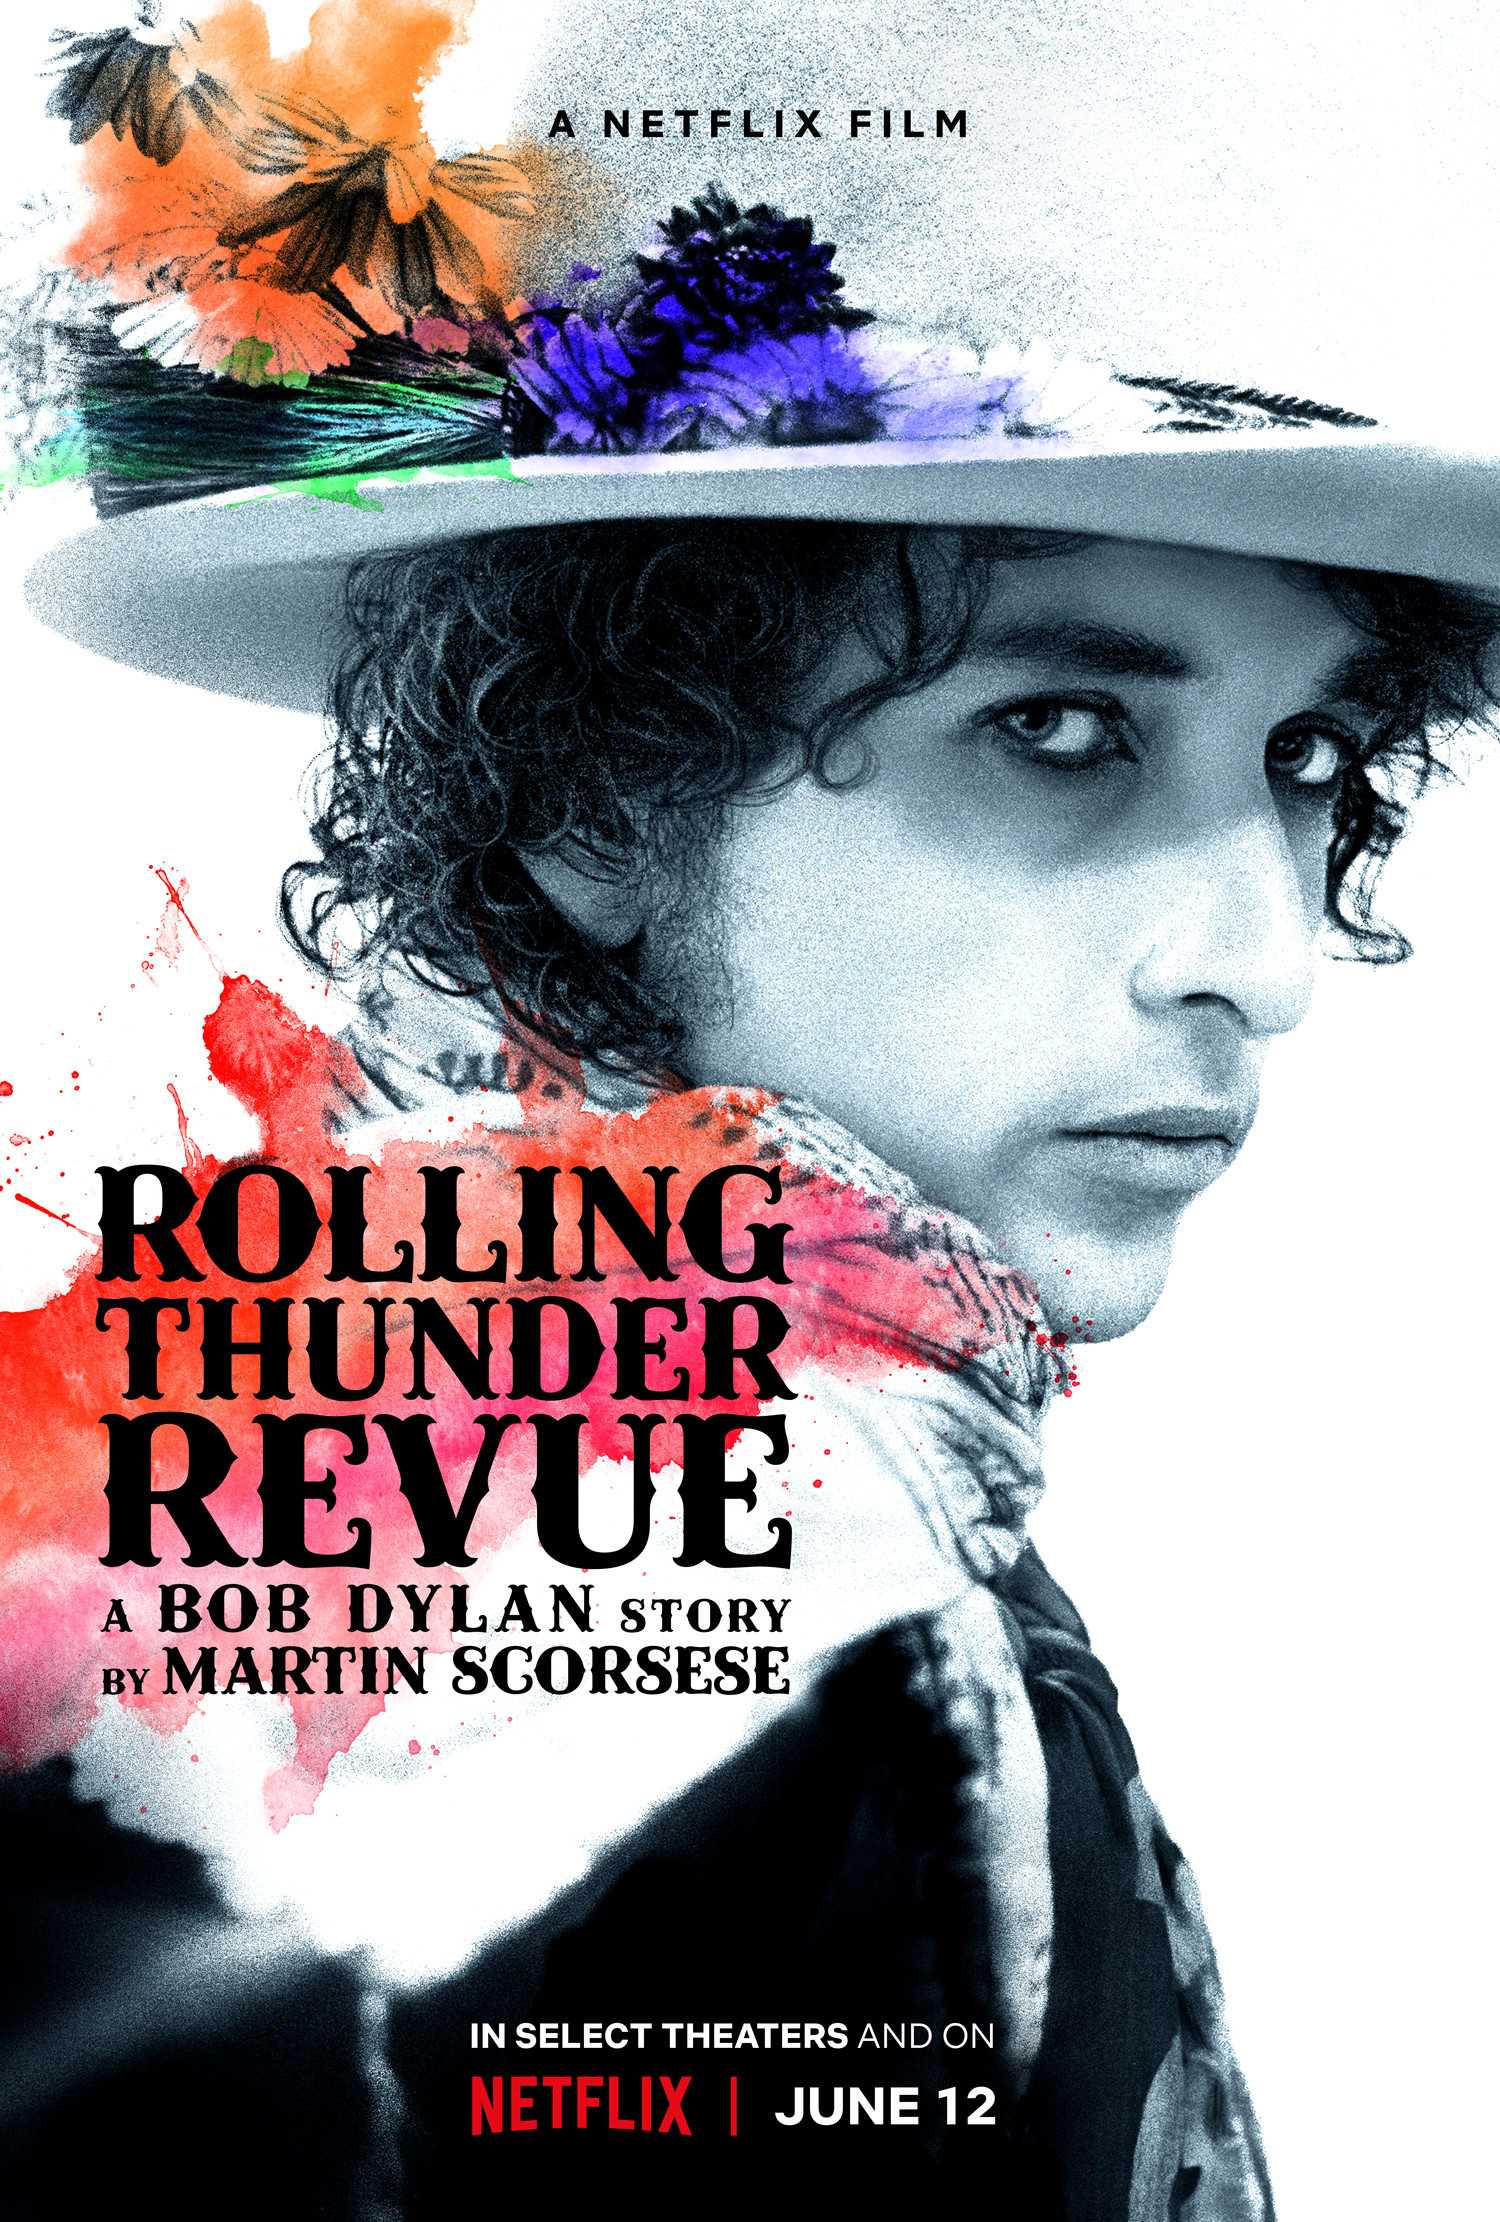 088f14c5f Rolling Thunder Revue: A Bob Dylan Story by Martin Scorsese Reviews ...